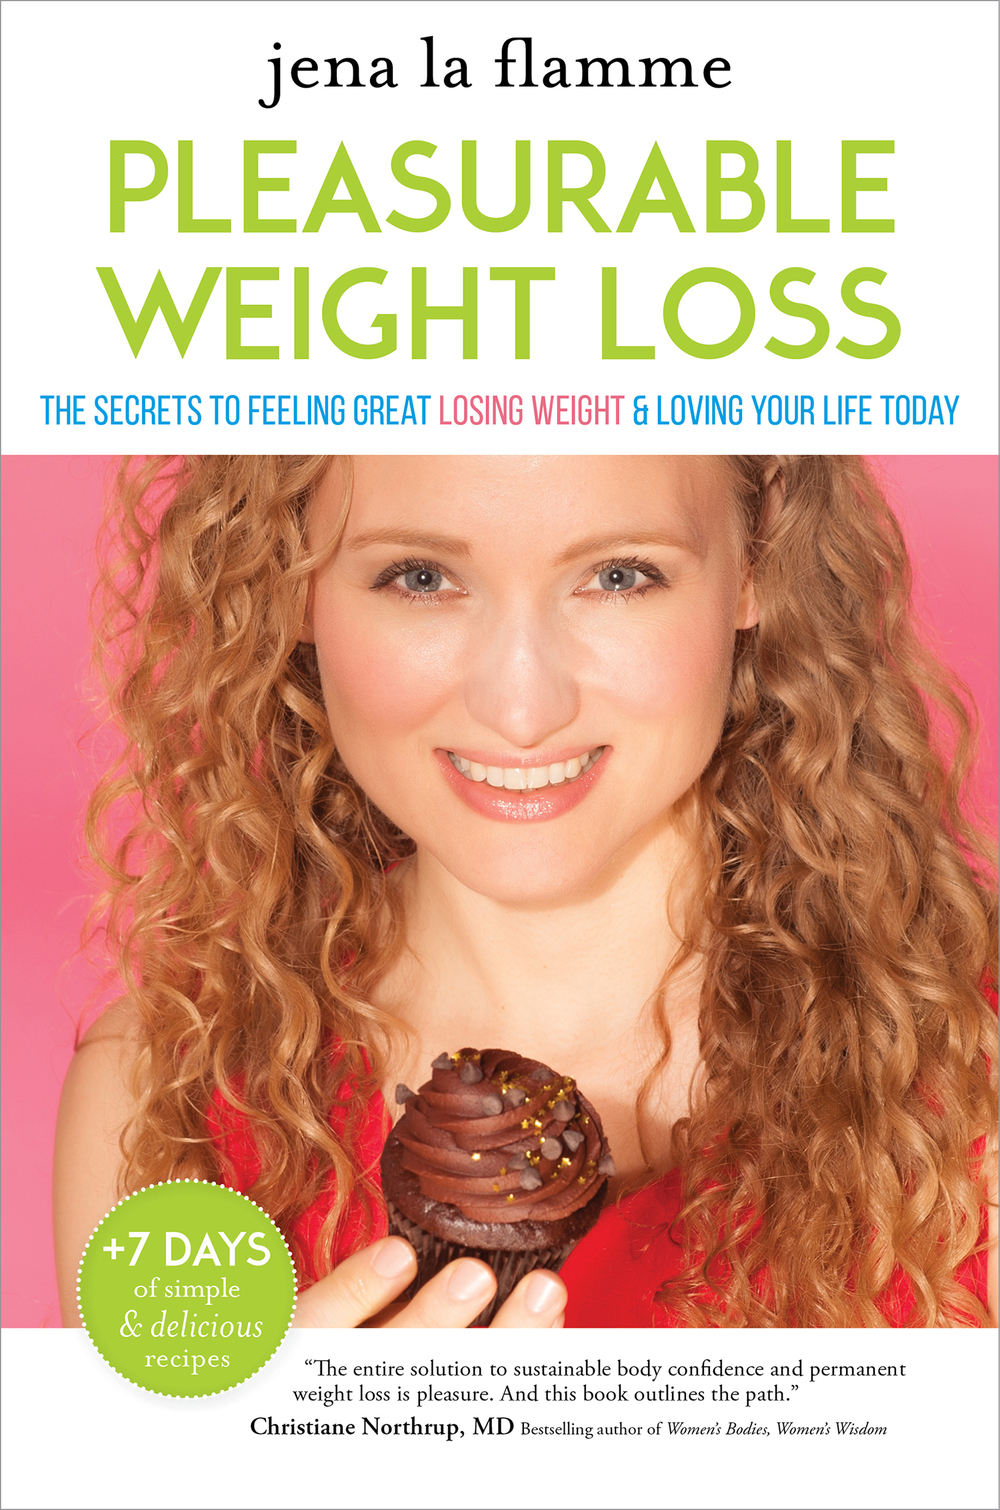 Pleasurable Weight Loss by Jena La Flamme